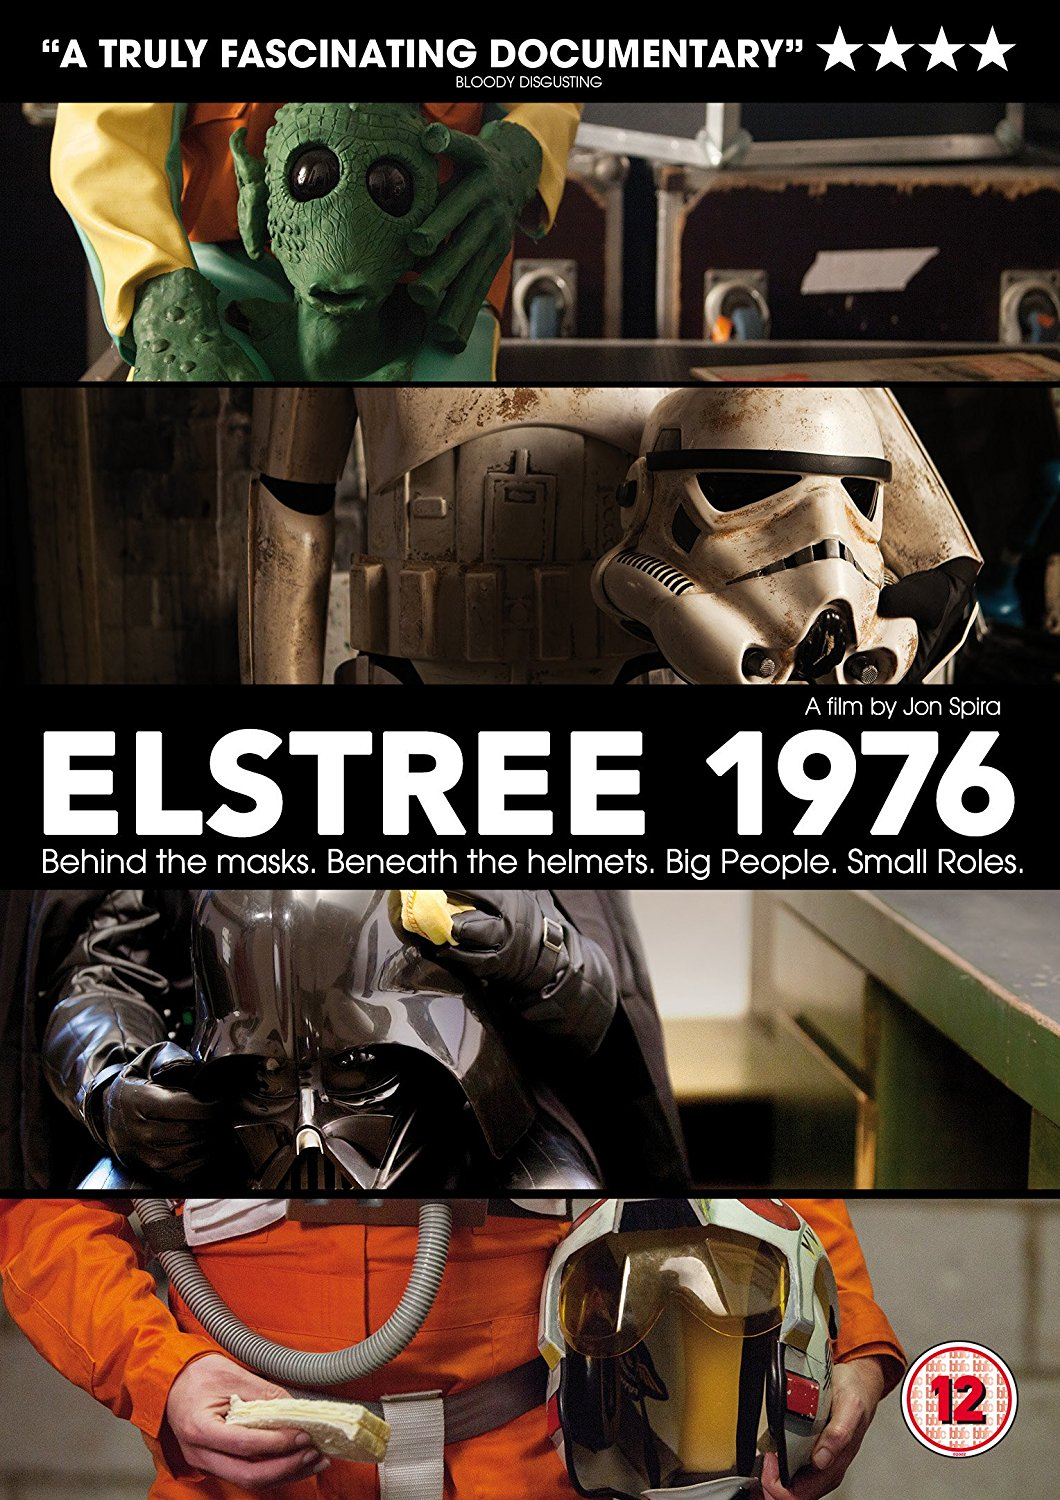 Elstree 1976 DVD review: the extras strike back